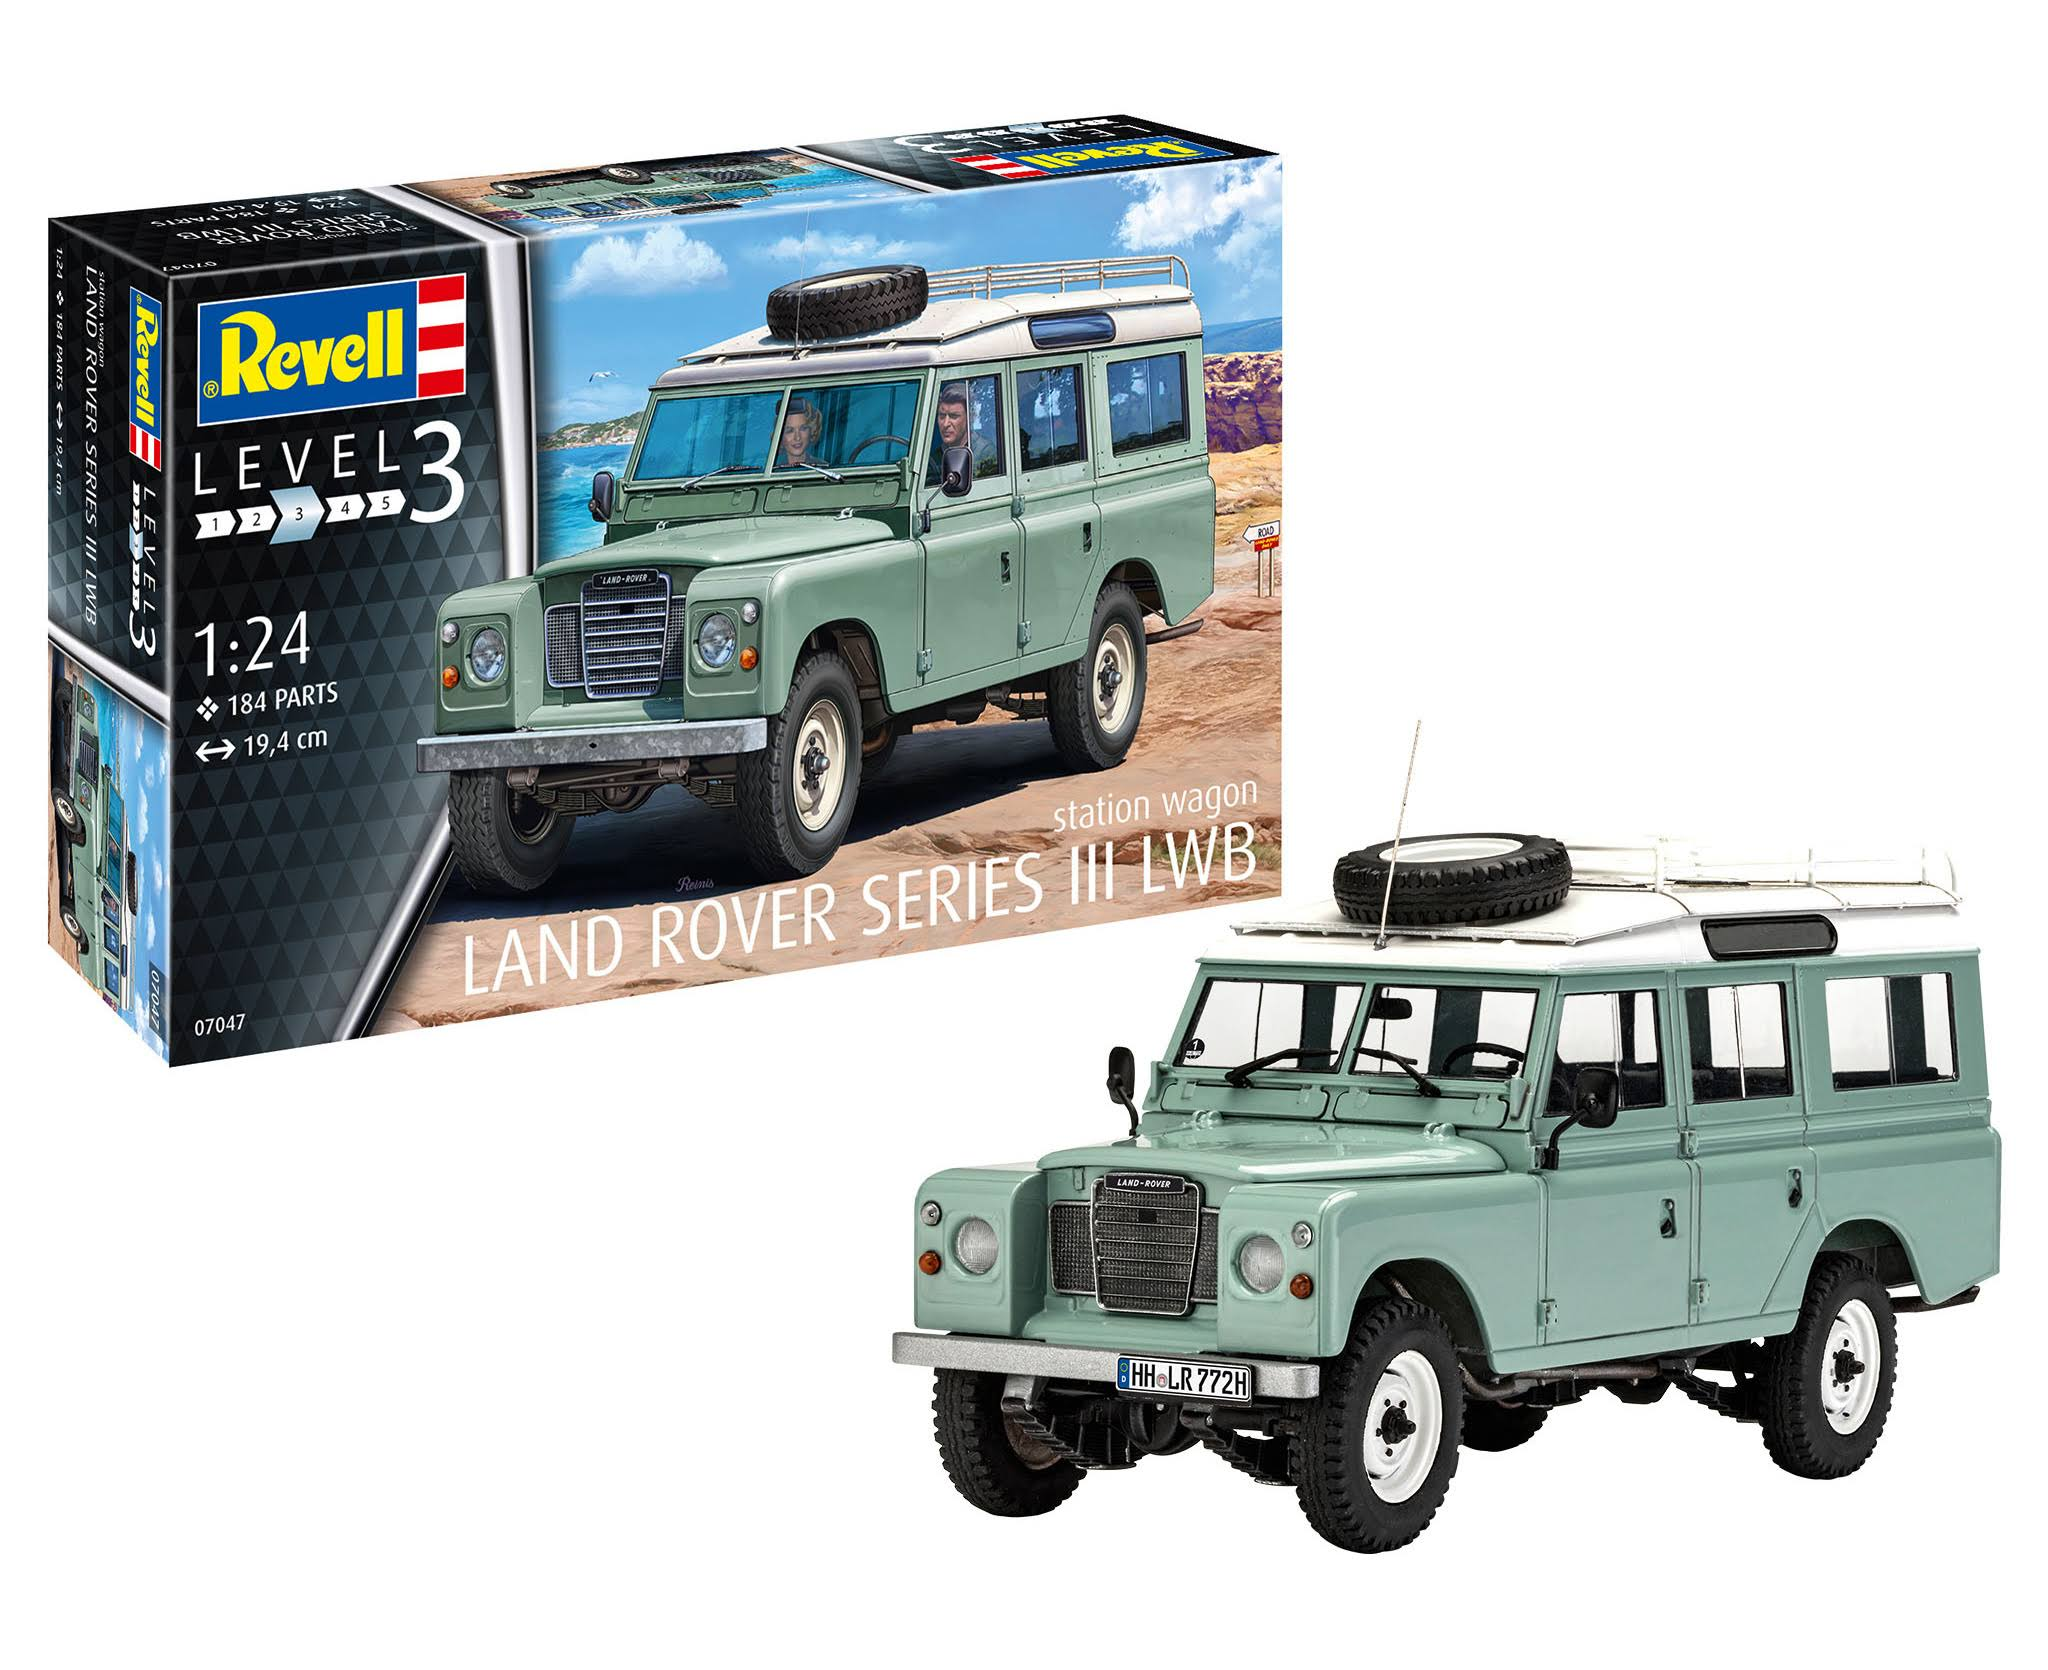 Revell - 1/24 Land Rover Series III - Plastic Model Car Kit (07047)